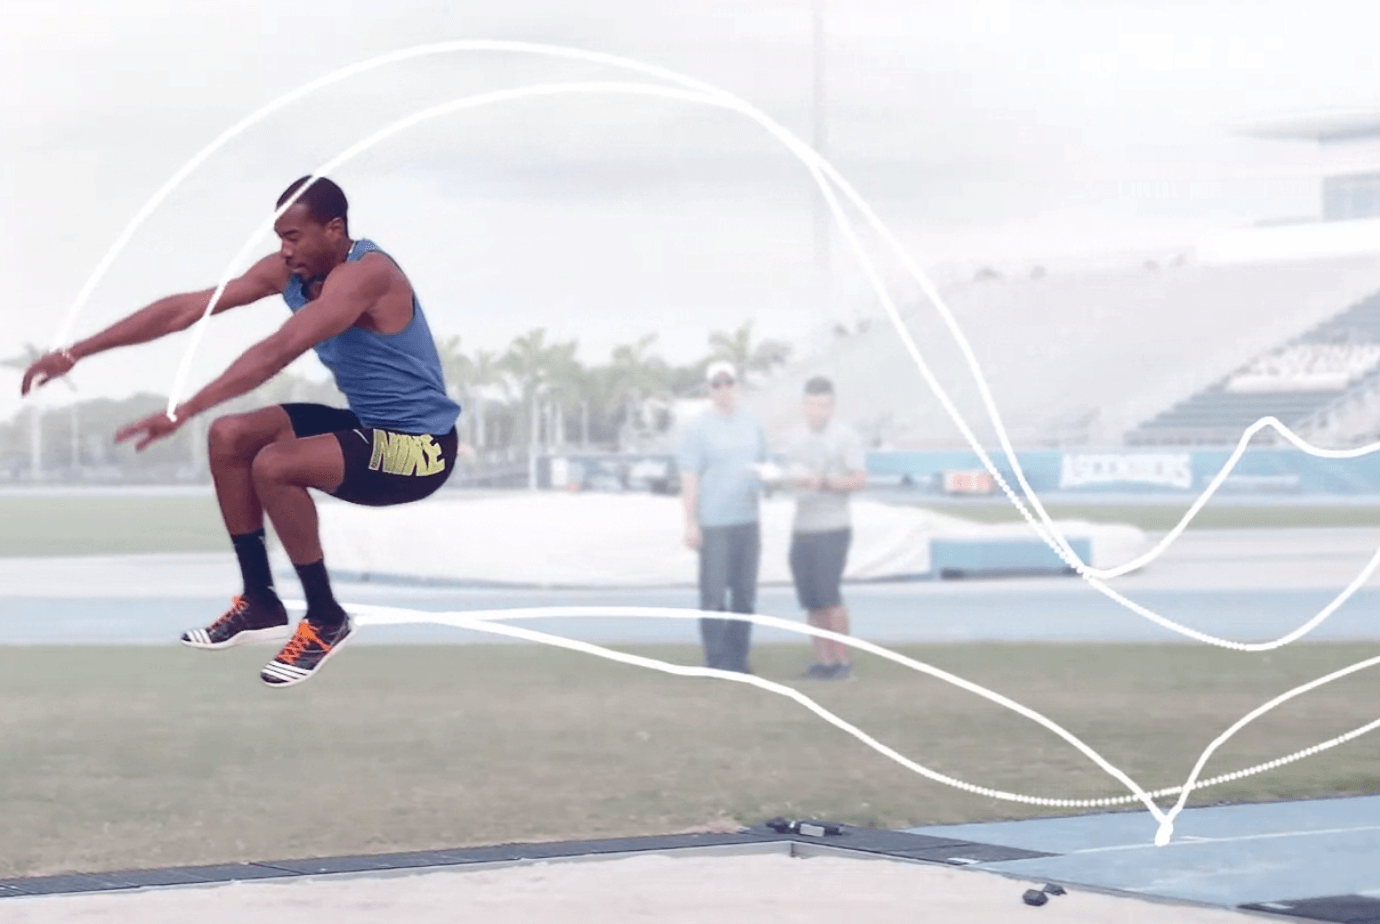 NYT interactive christian taylor athlete